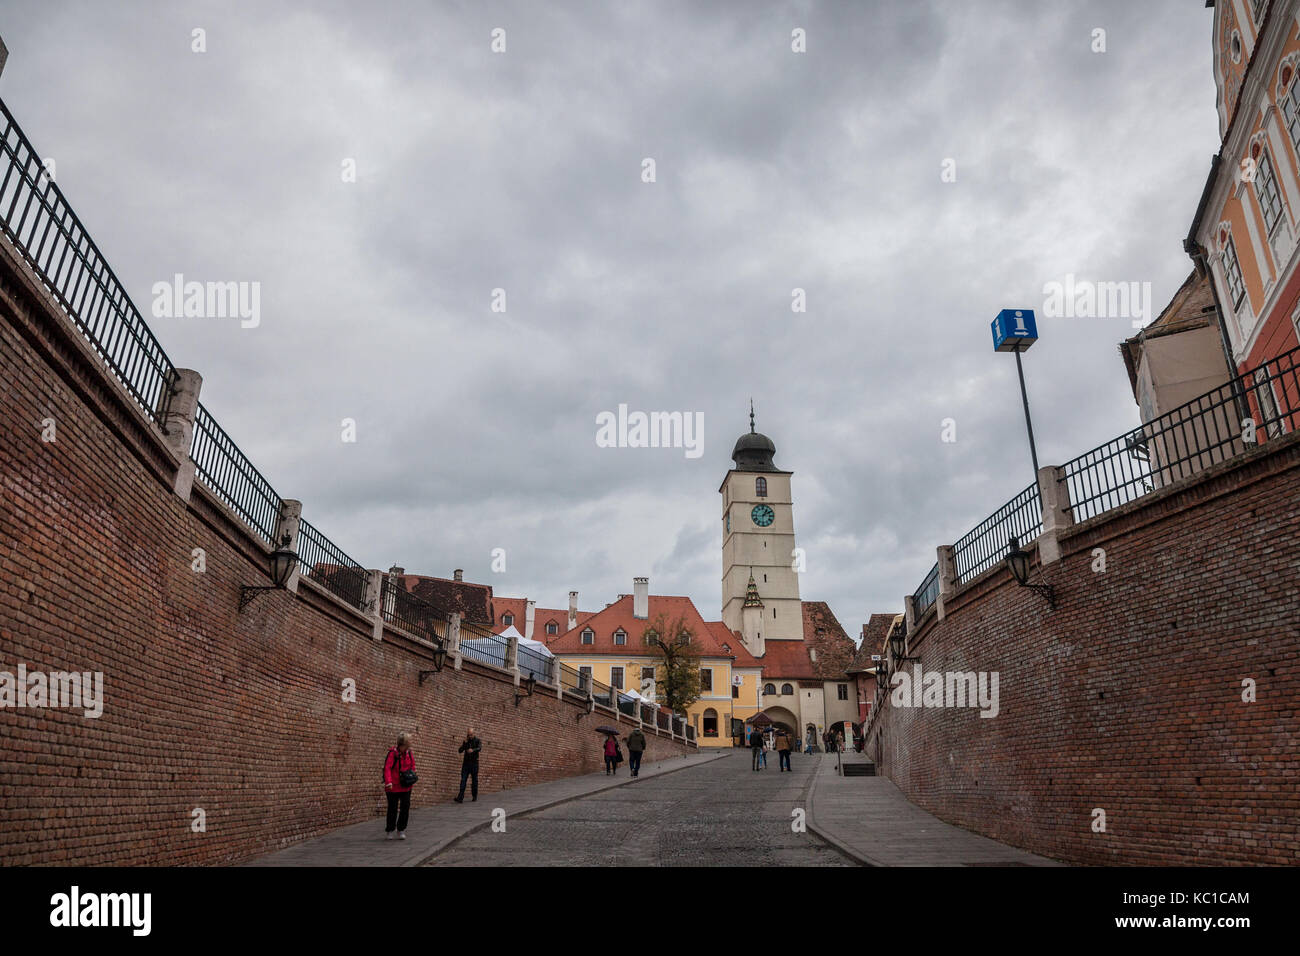 SIBIU, ROMANIA SEPTEMBER 22, 2017: Upper town of Sibiu, in Transylvania, during a cloudy afternoon in a medieval - Stock Image